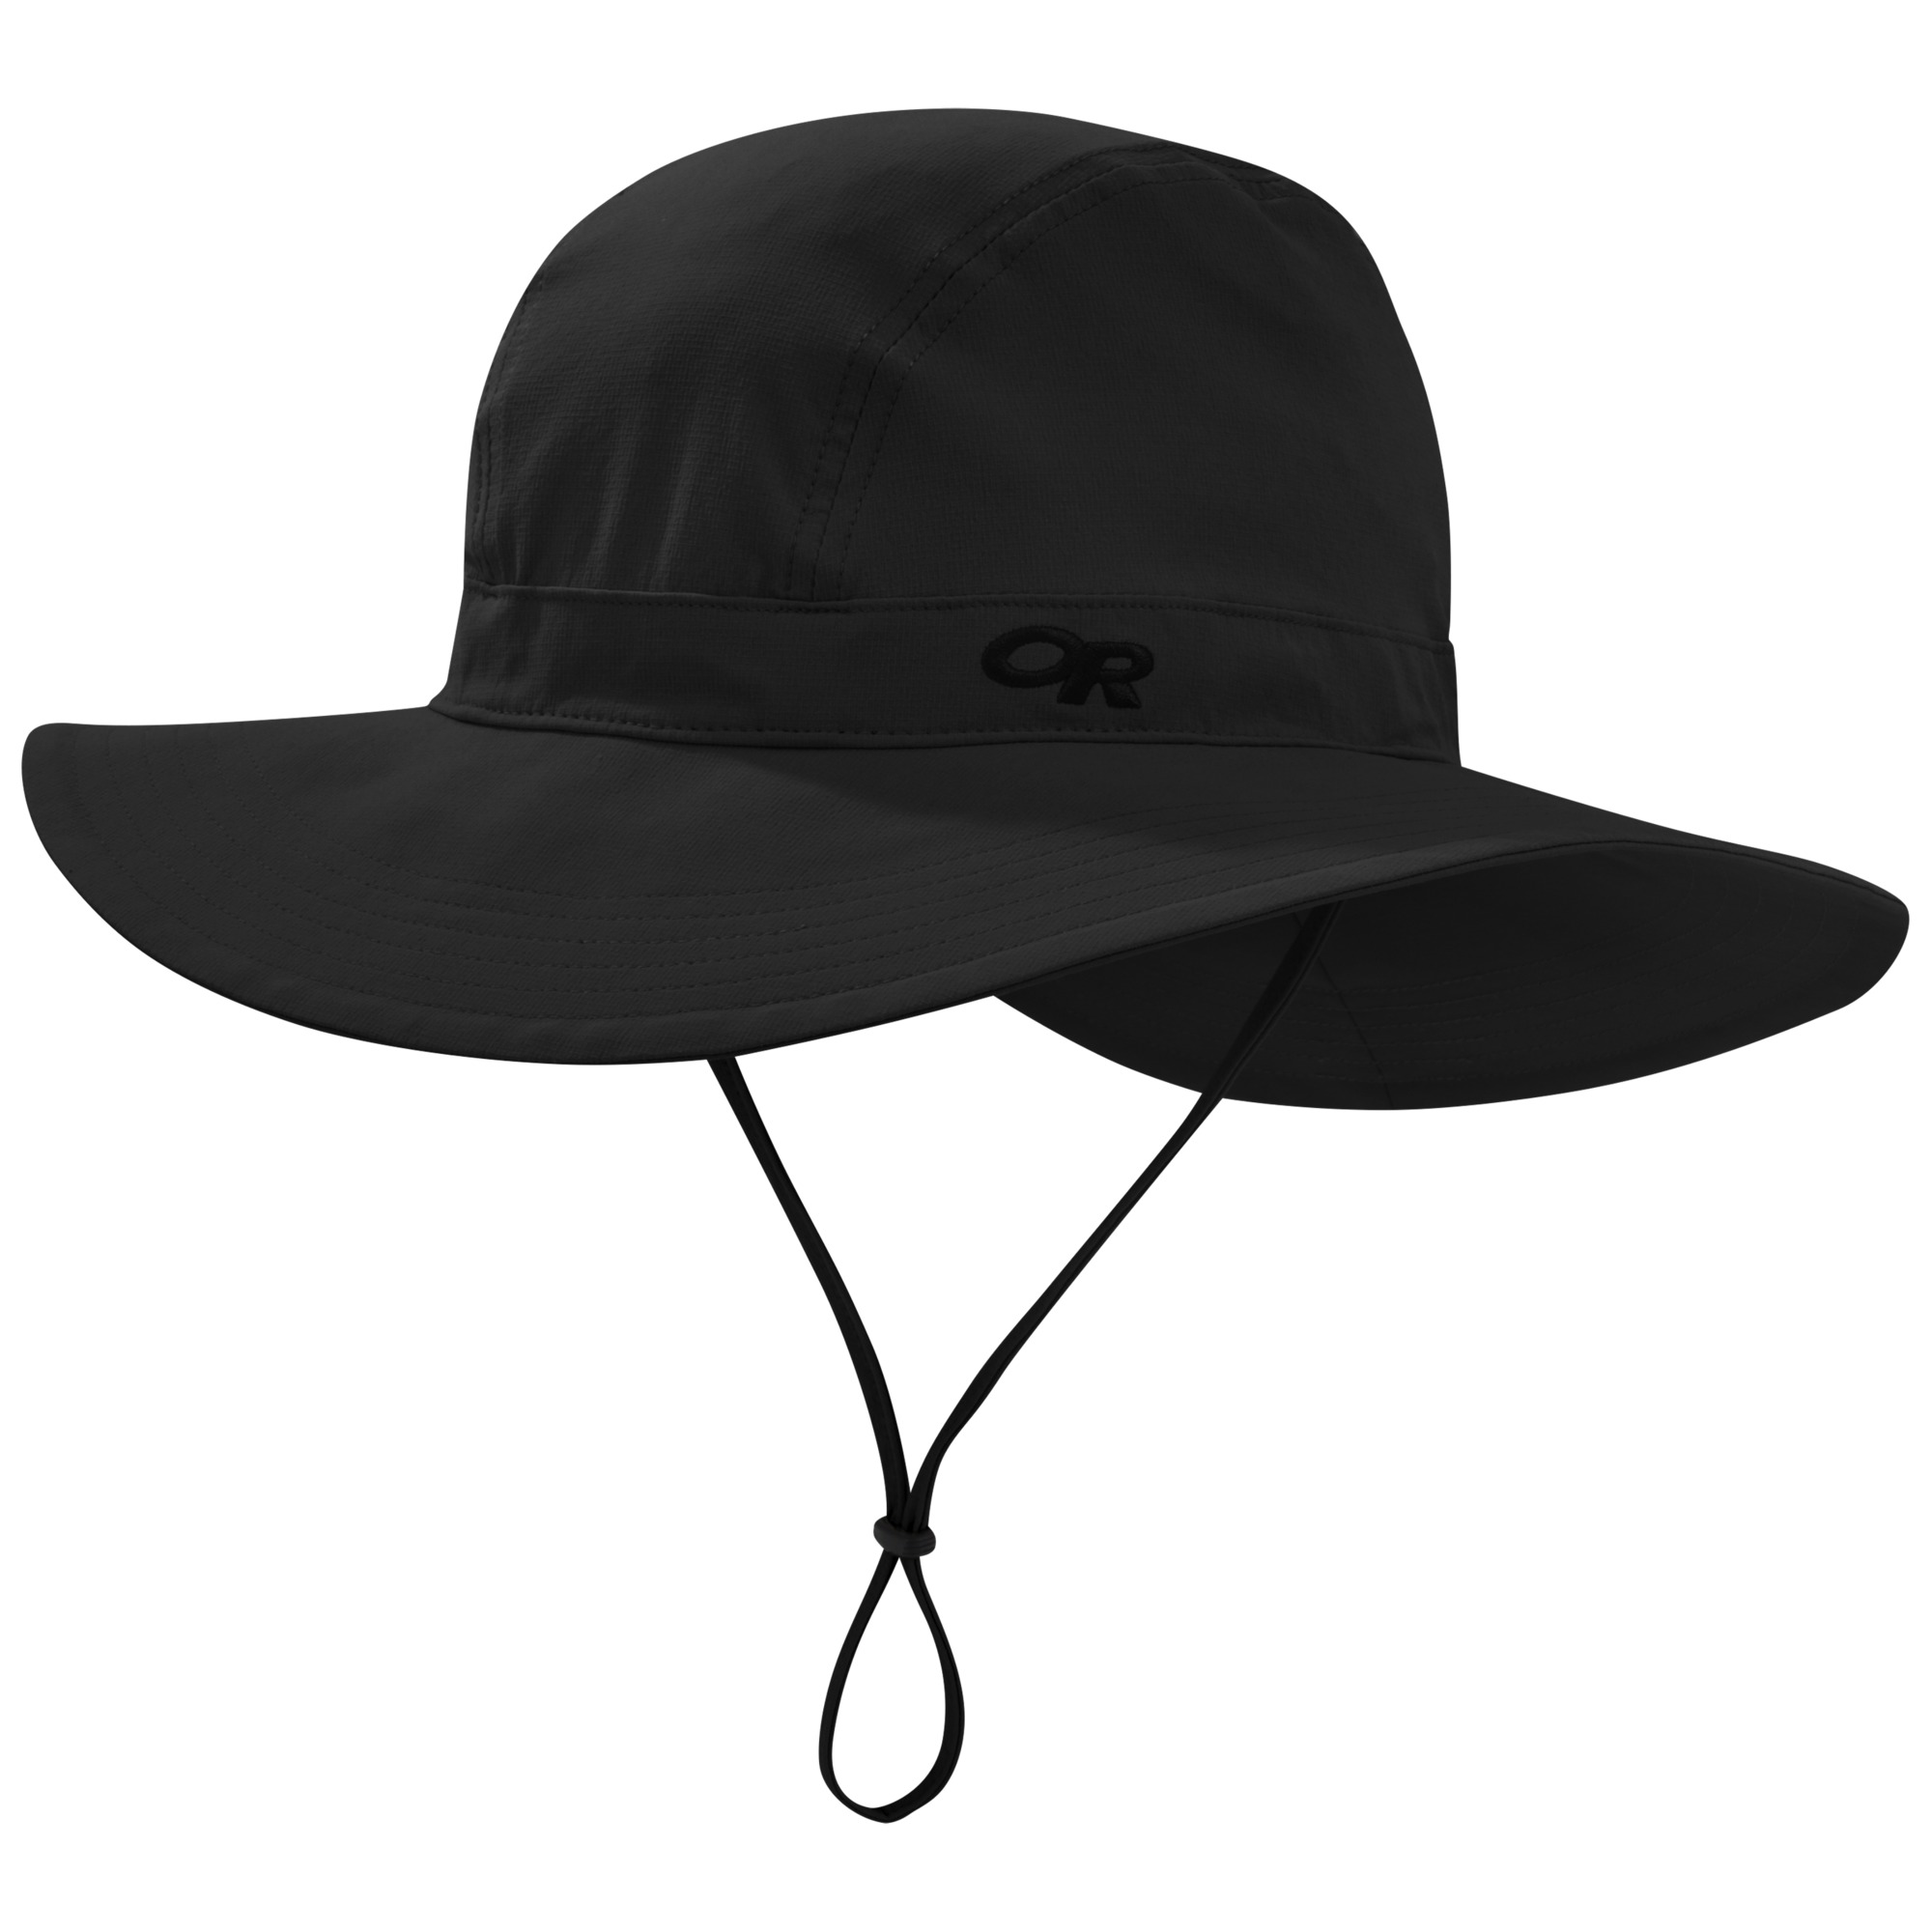 18710c6c7 Ferrosi Wide-Brim Hat - black | Outdoor Research